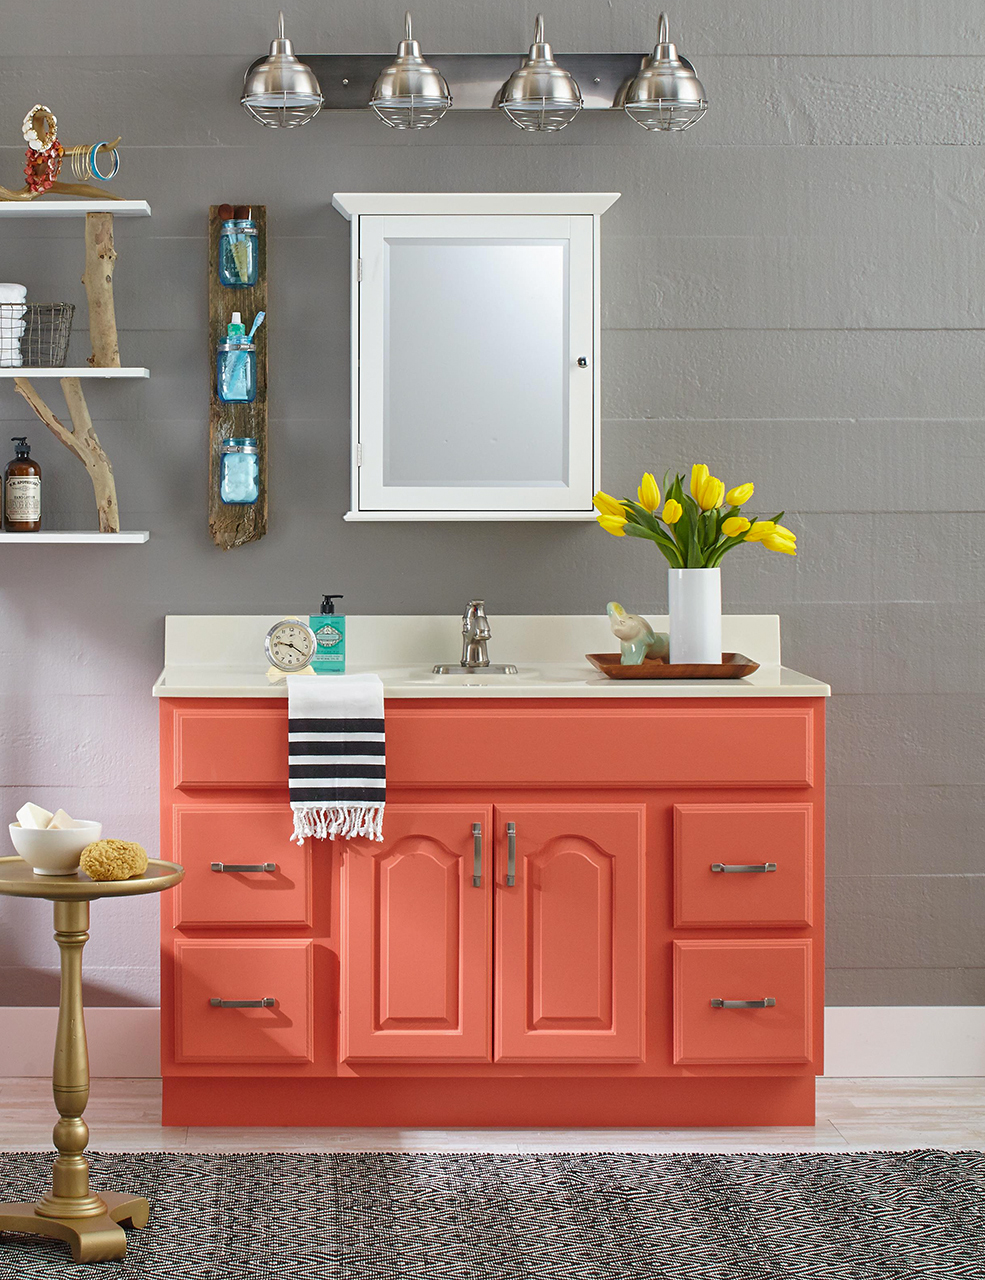 Eclectic style bathroom with coral vanity and grey walls